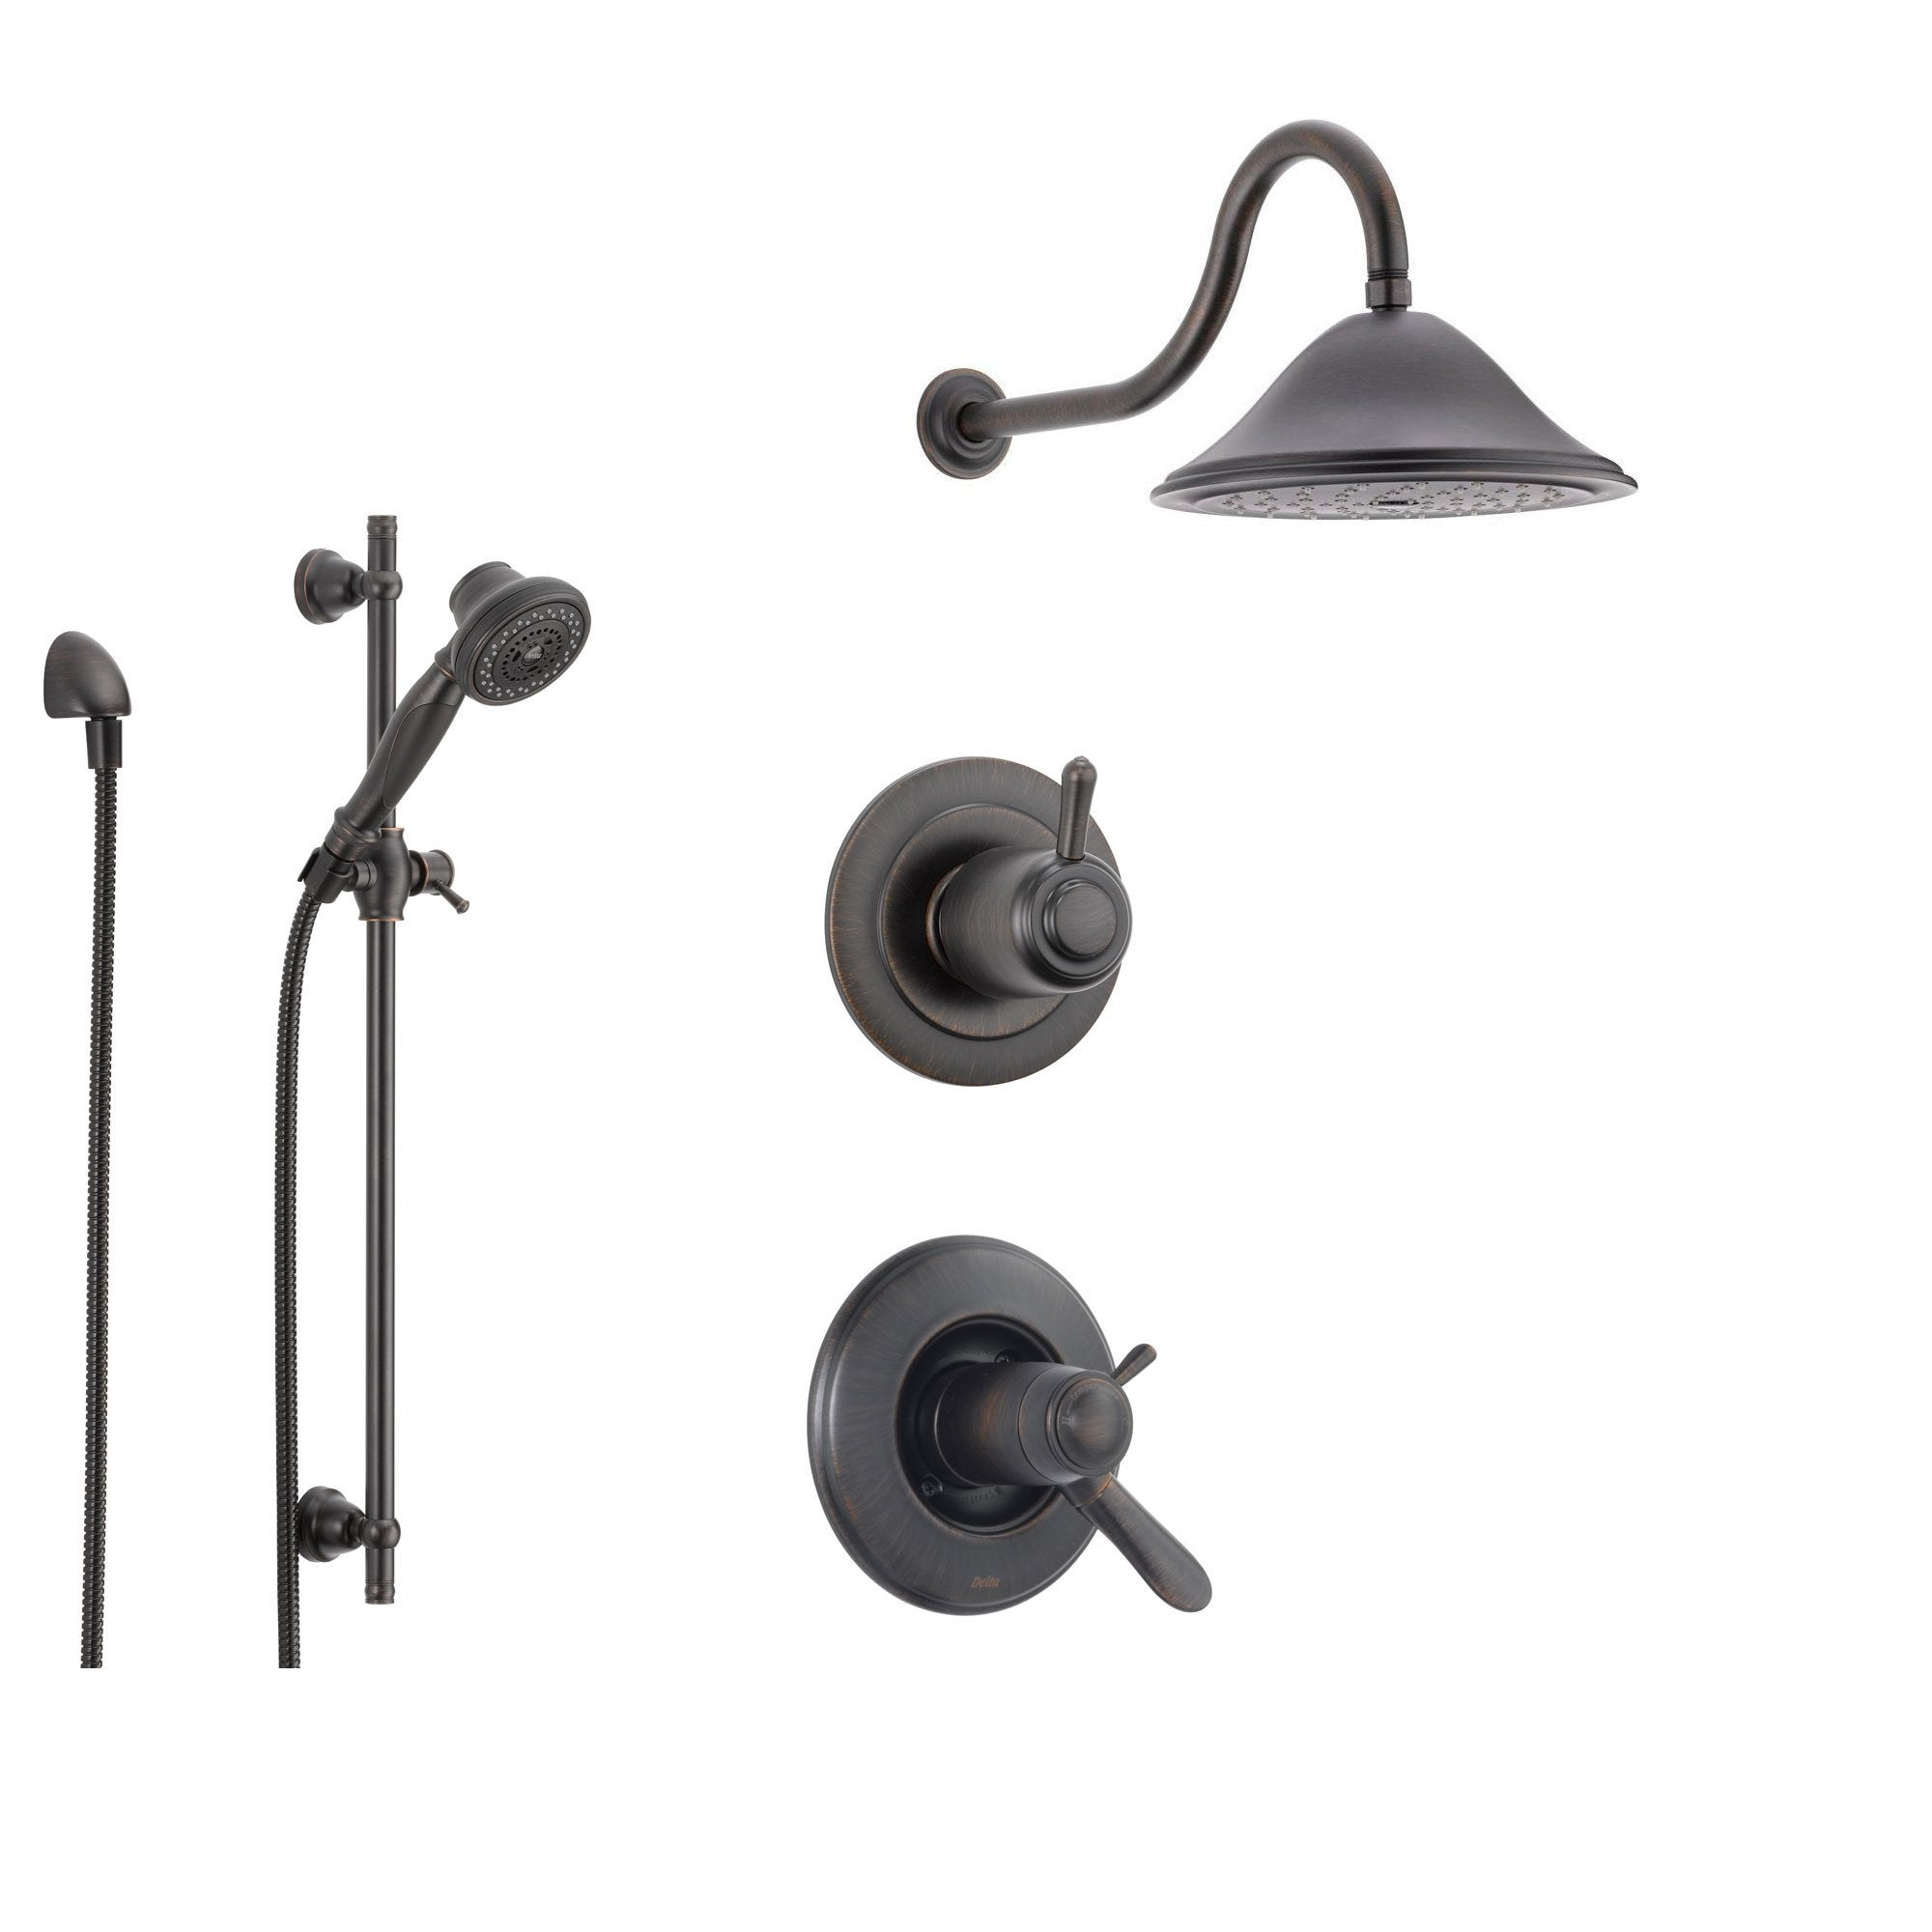 Delta Lahara Venetian Bronze Shower System with Thermostatic Shower Handle, 3-setting Diverter, Large Rain Shower Head, and Handheld Spray SS17T3884RB